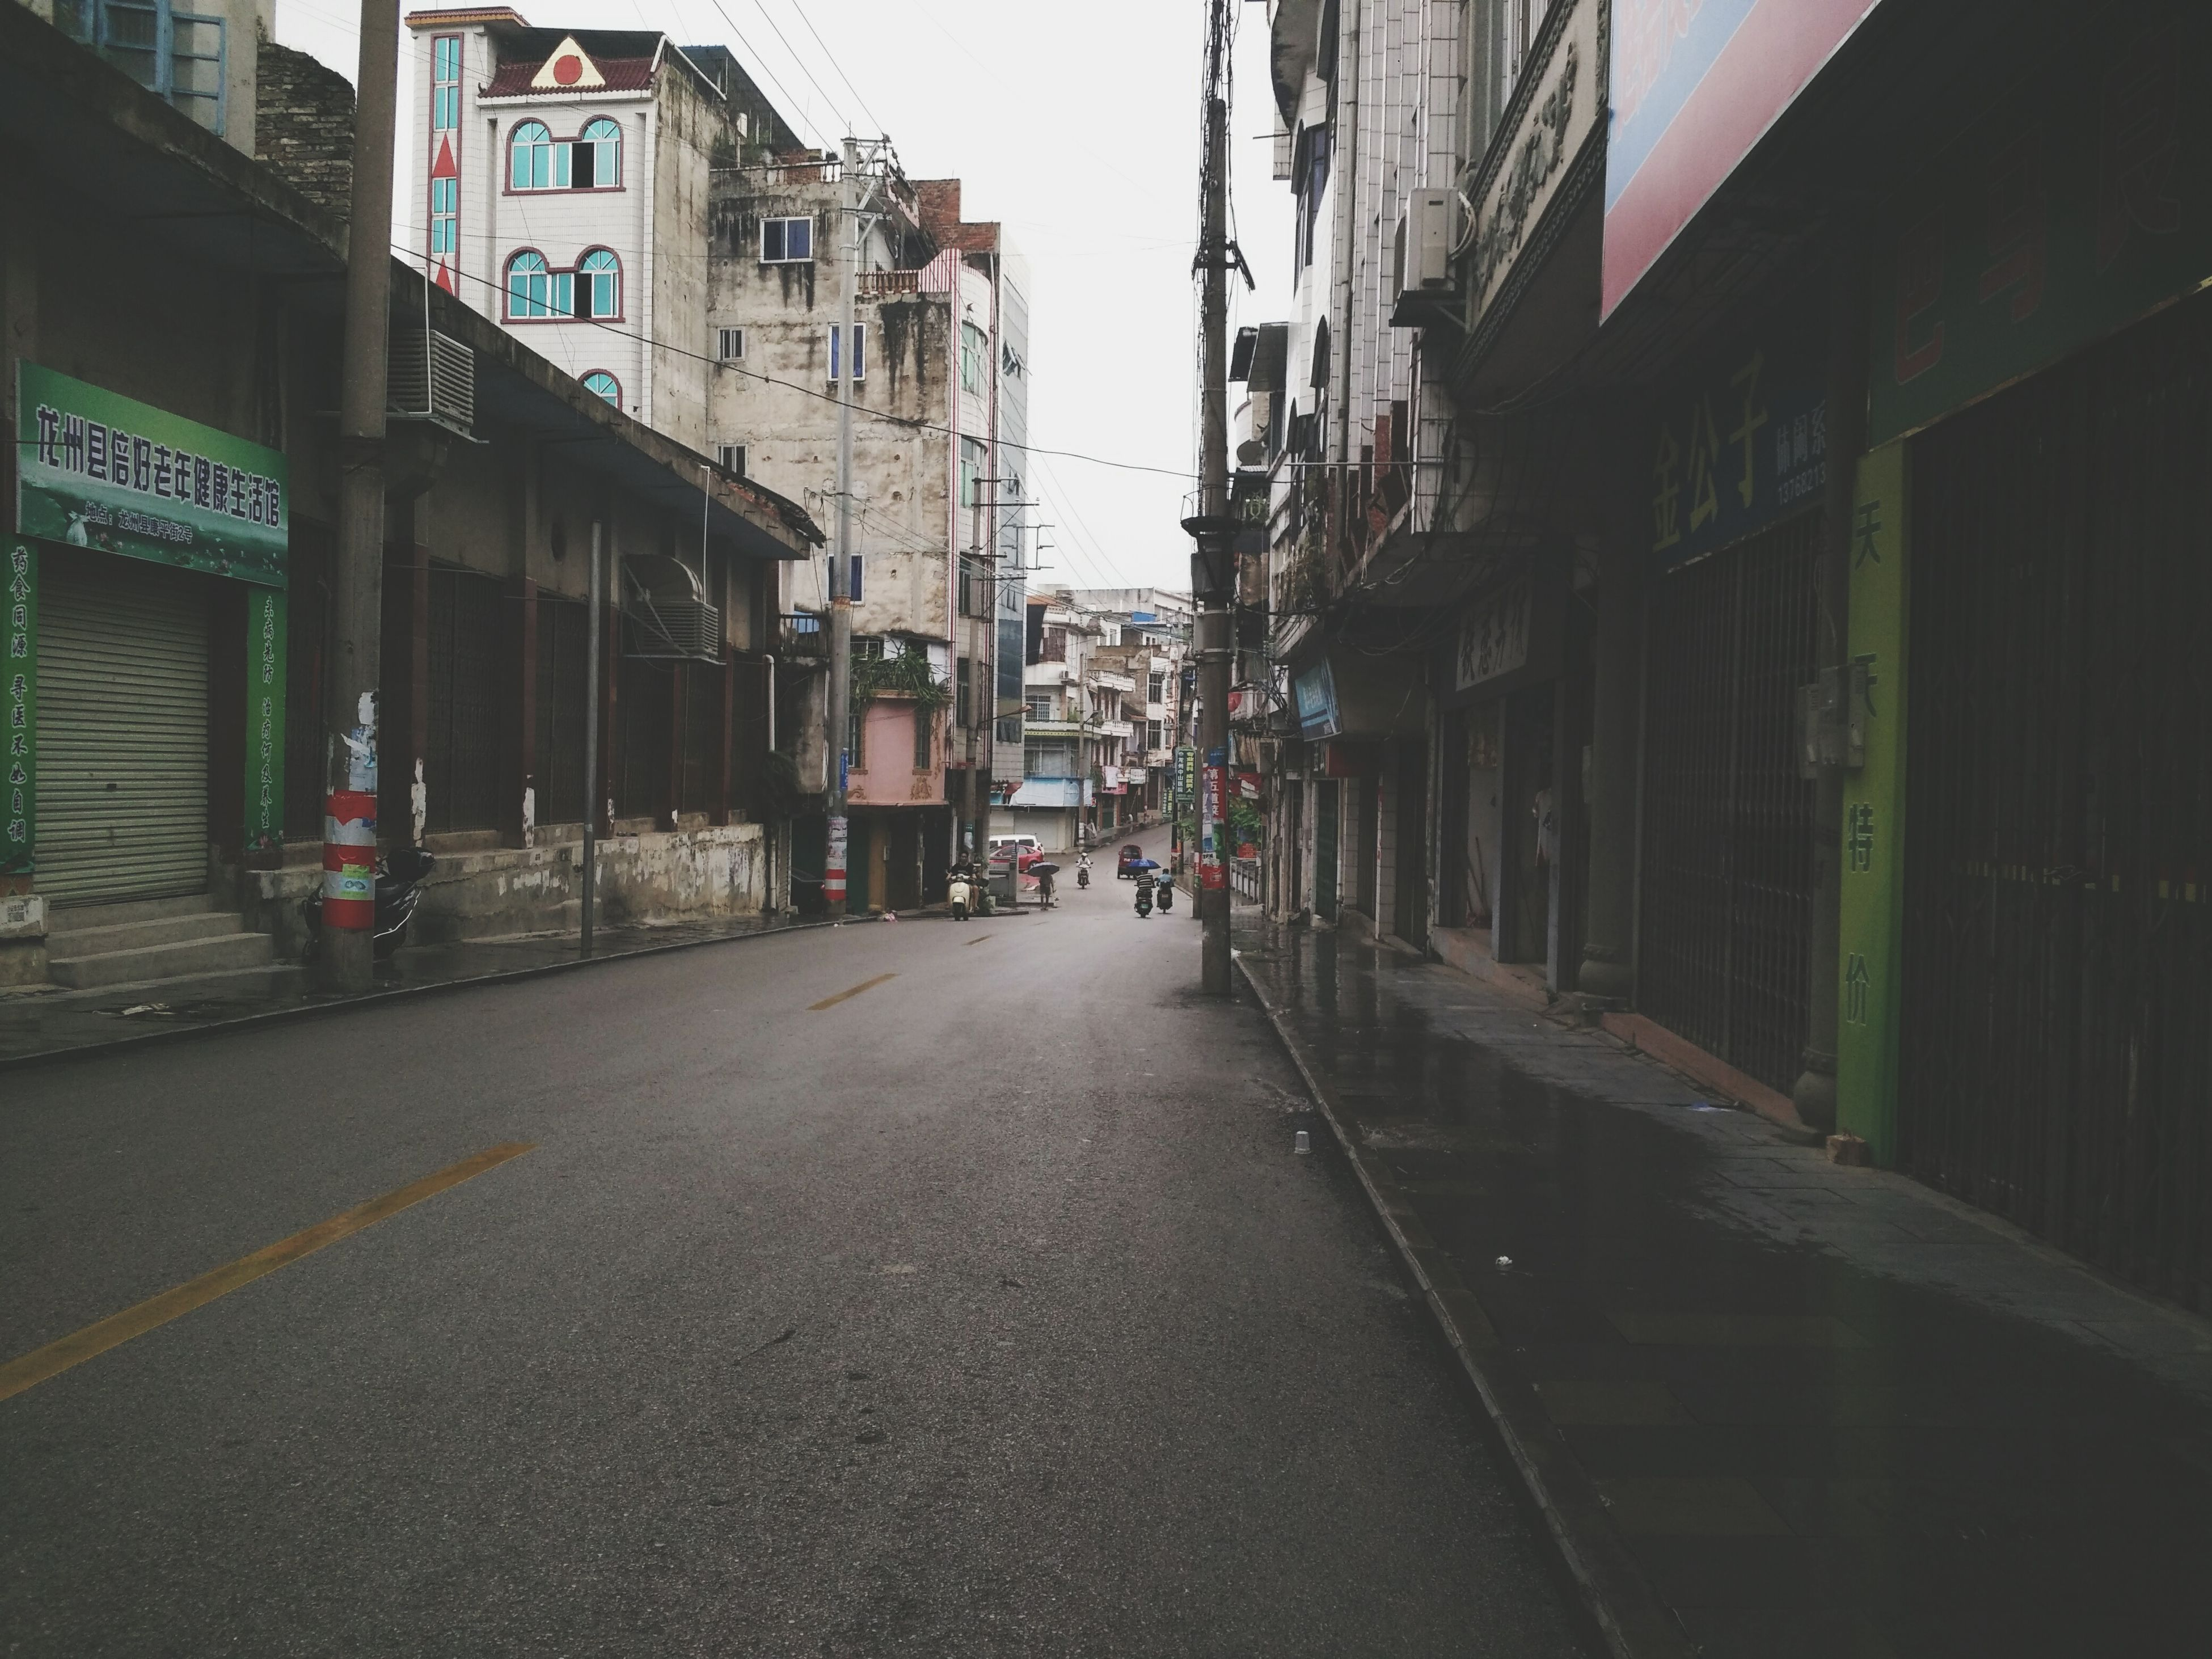 building exterior, architecture, built structure, the way forward, street, diminishing perspective, city, transportation, building, residential building, residential structure, vanishing point, road, narrow, alley, day, outdoors, clear sky, city life, road marking